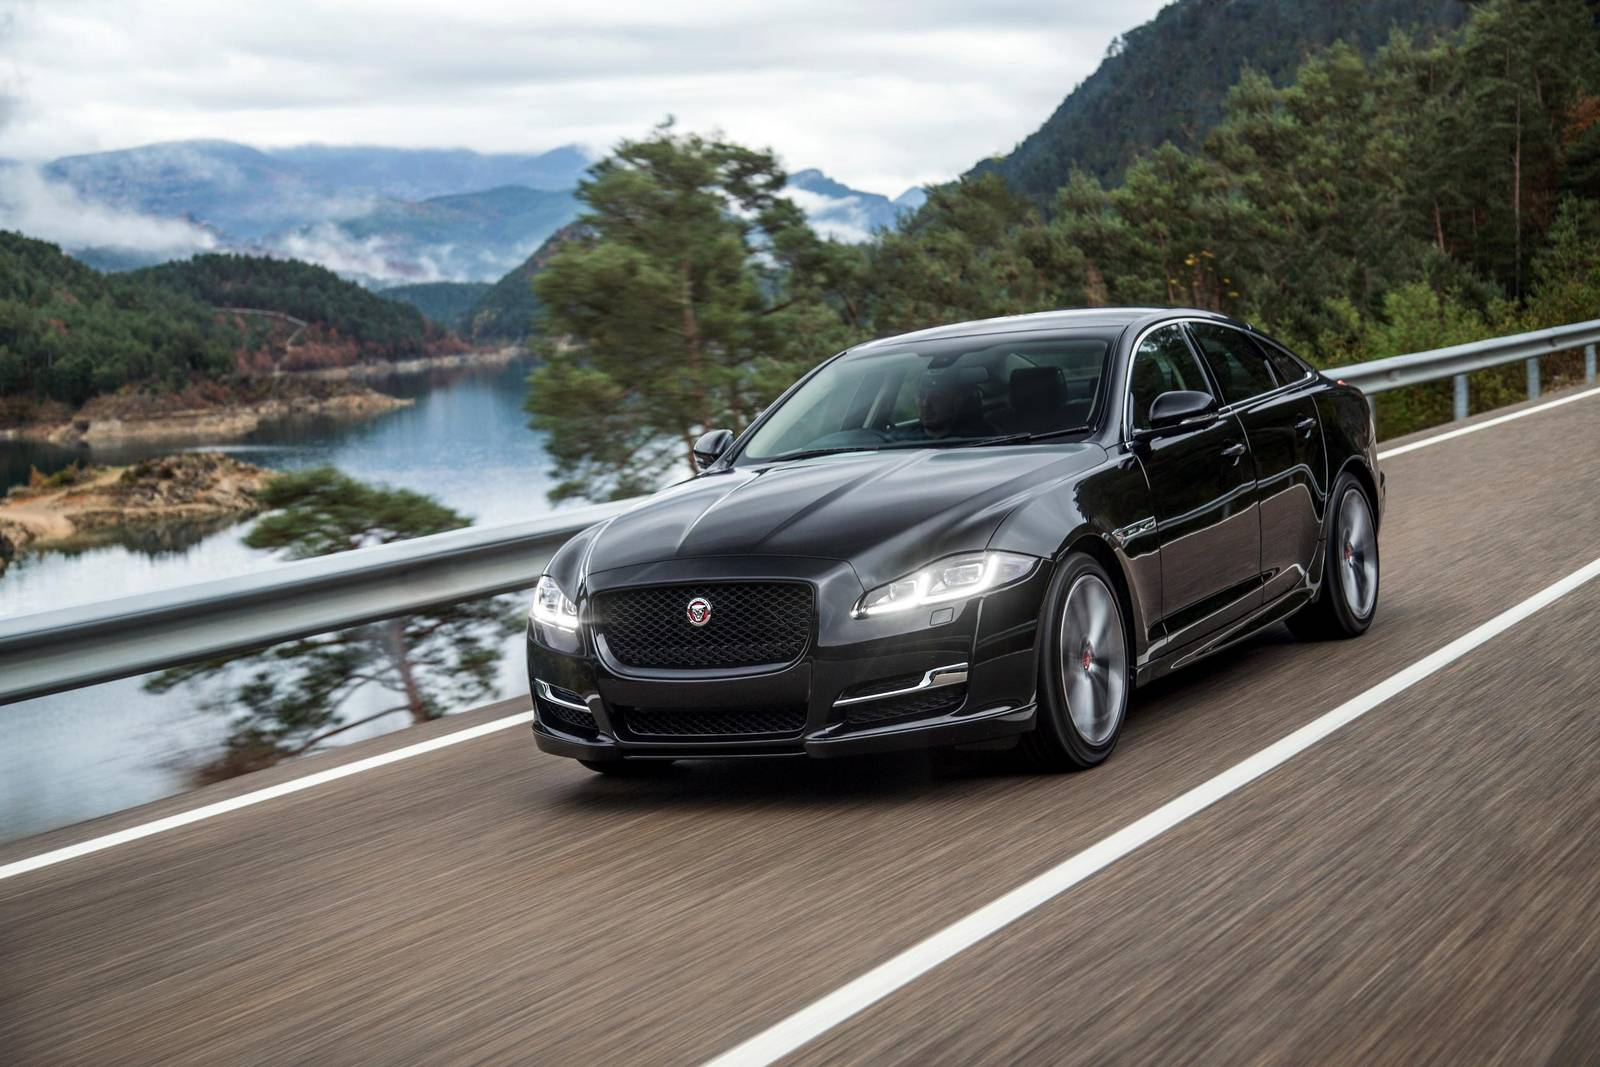 Jaguar 2018 Xj >> Jaguar XJ to be Replaced with New Model - GTspirit